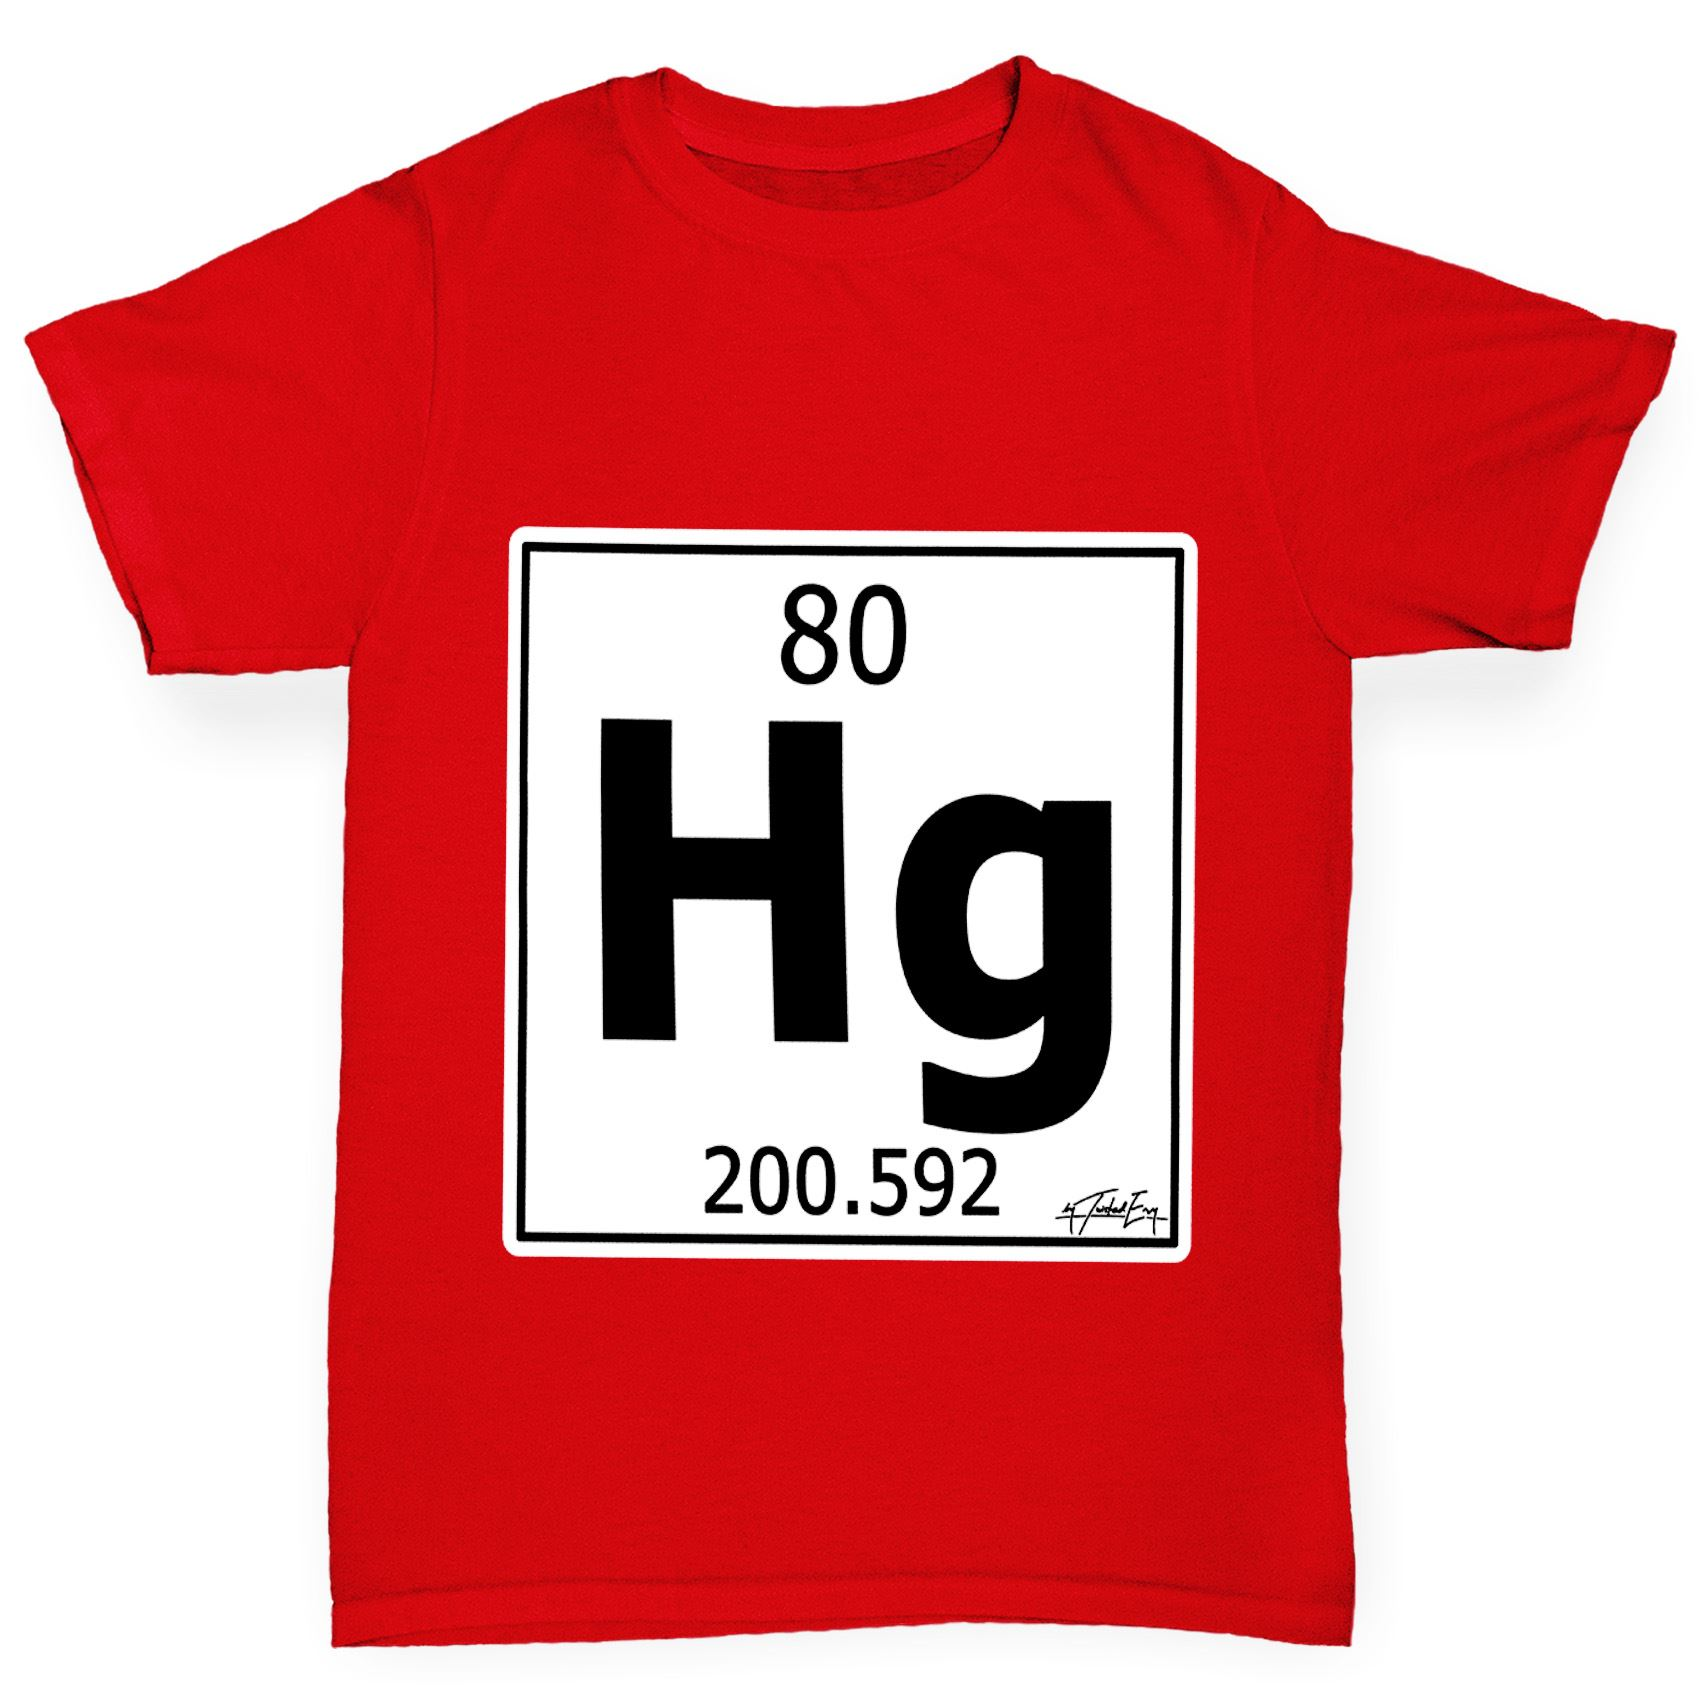 Twisted envy boys periodic table element hg mercury t shirt ebay twisted envy boy 039 s periodic table element gamestrikefo Image collections